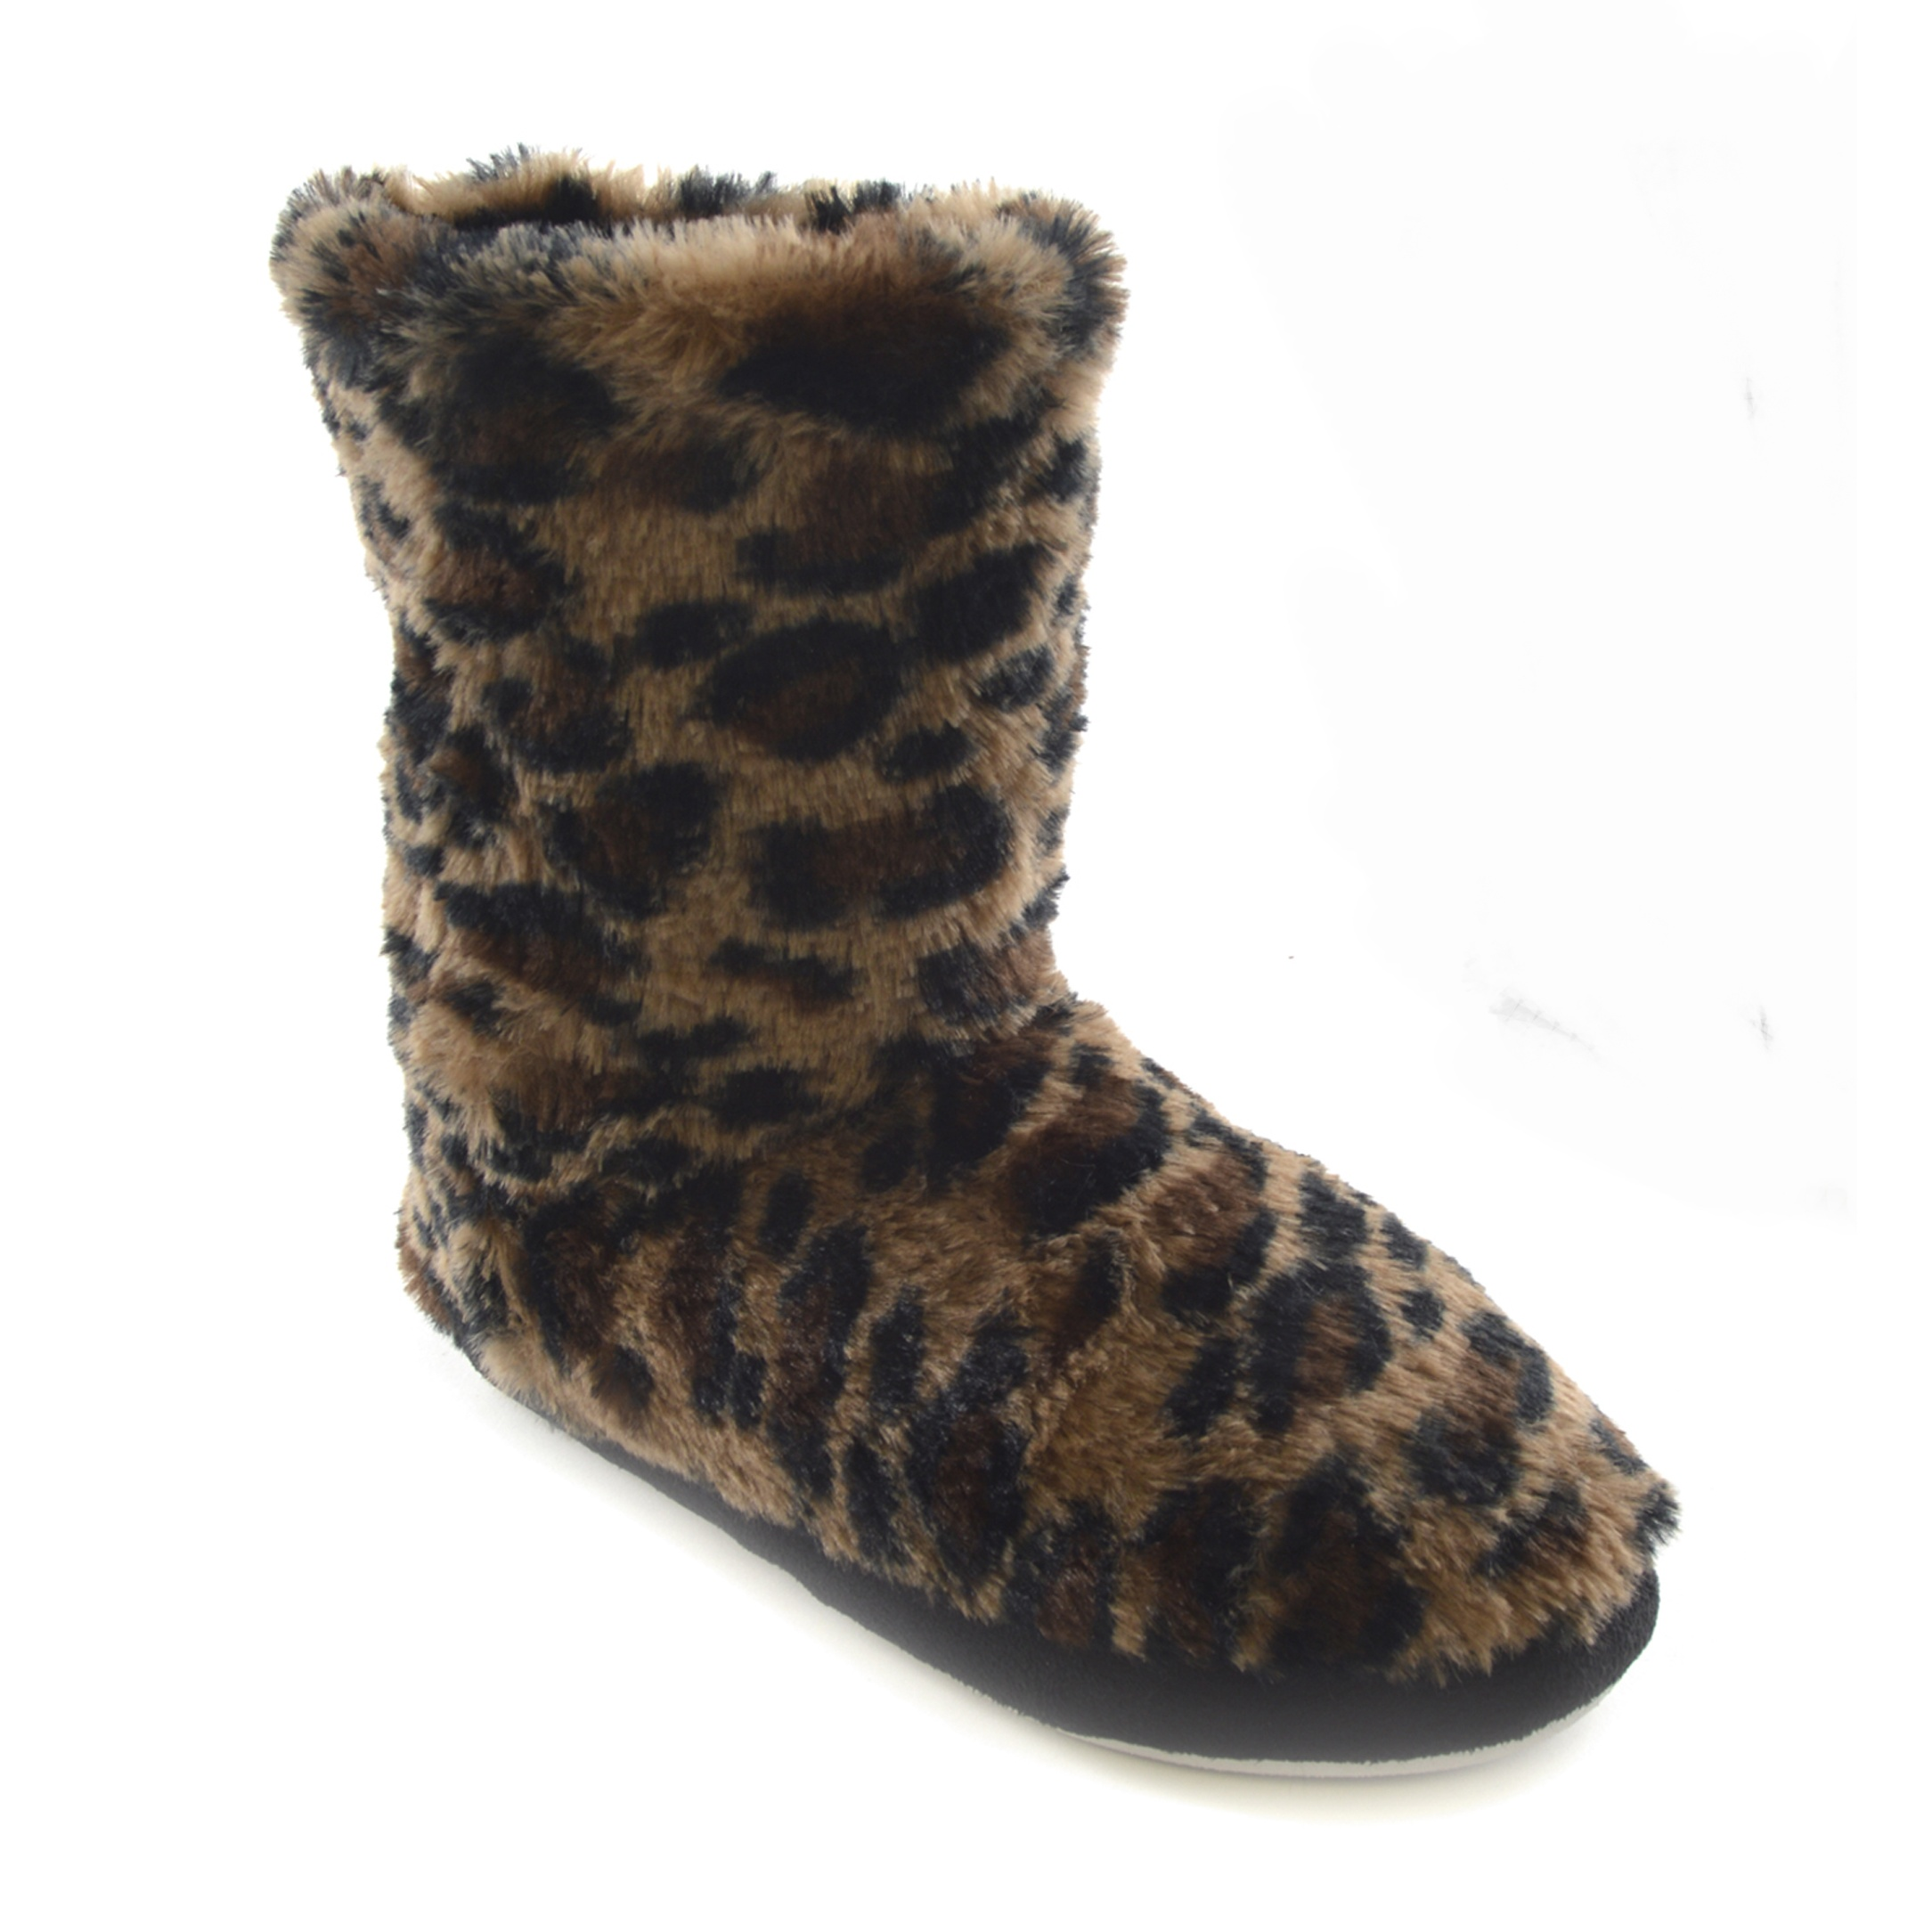 Womens Animal House Shoes